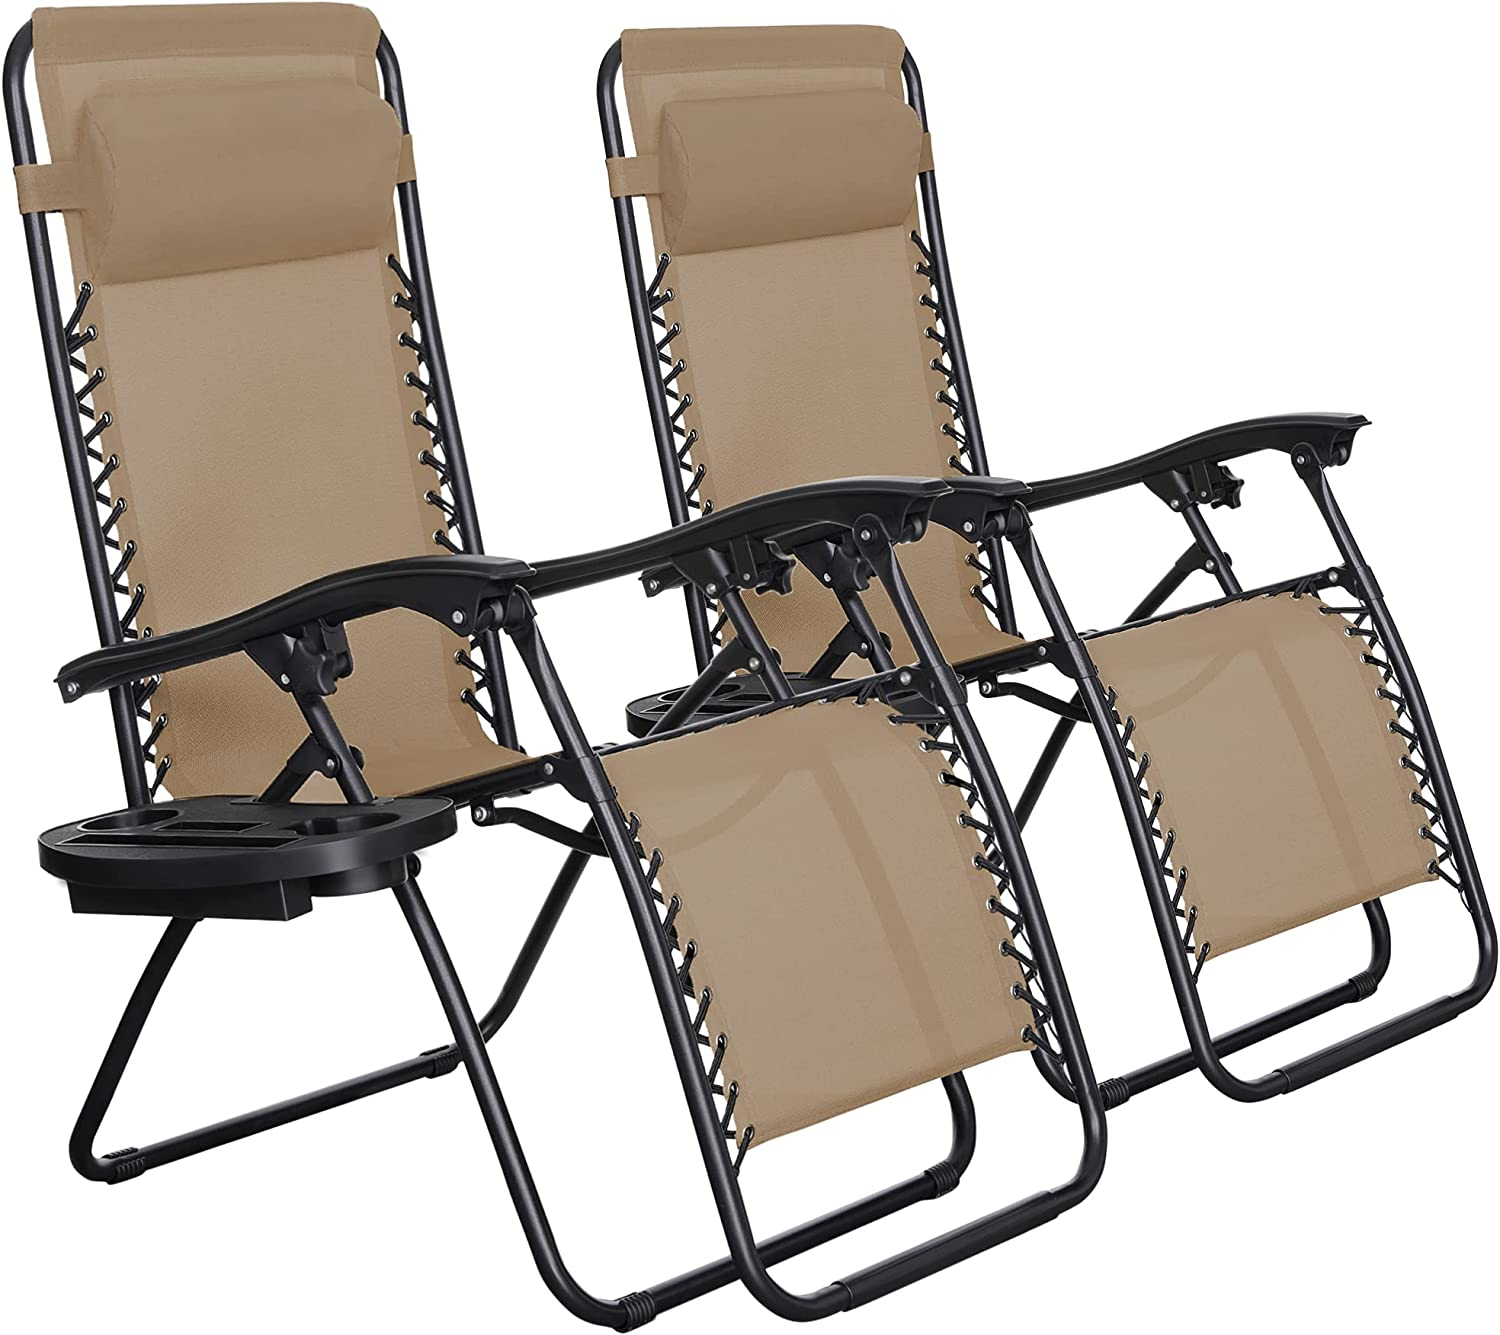 SONGMICS Zero Gravity Chairs, Set of 2 Outdoor Lounge Chairs, Patio Chaise Lounges, Reclining Comfortable Ergonomic Foldable and Lockable, with Headrest and Cup Holder,Beige UGCB001M01